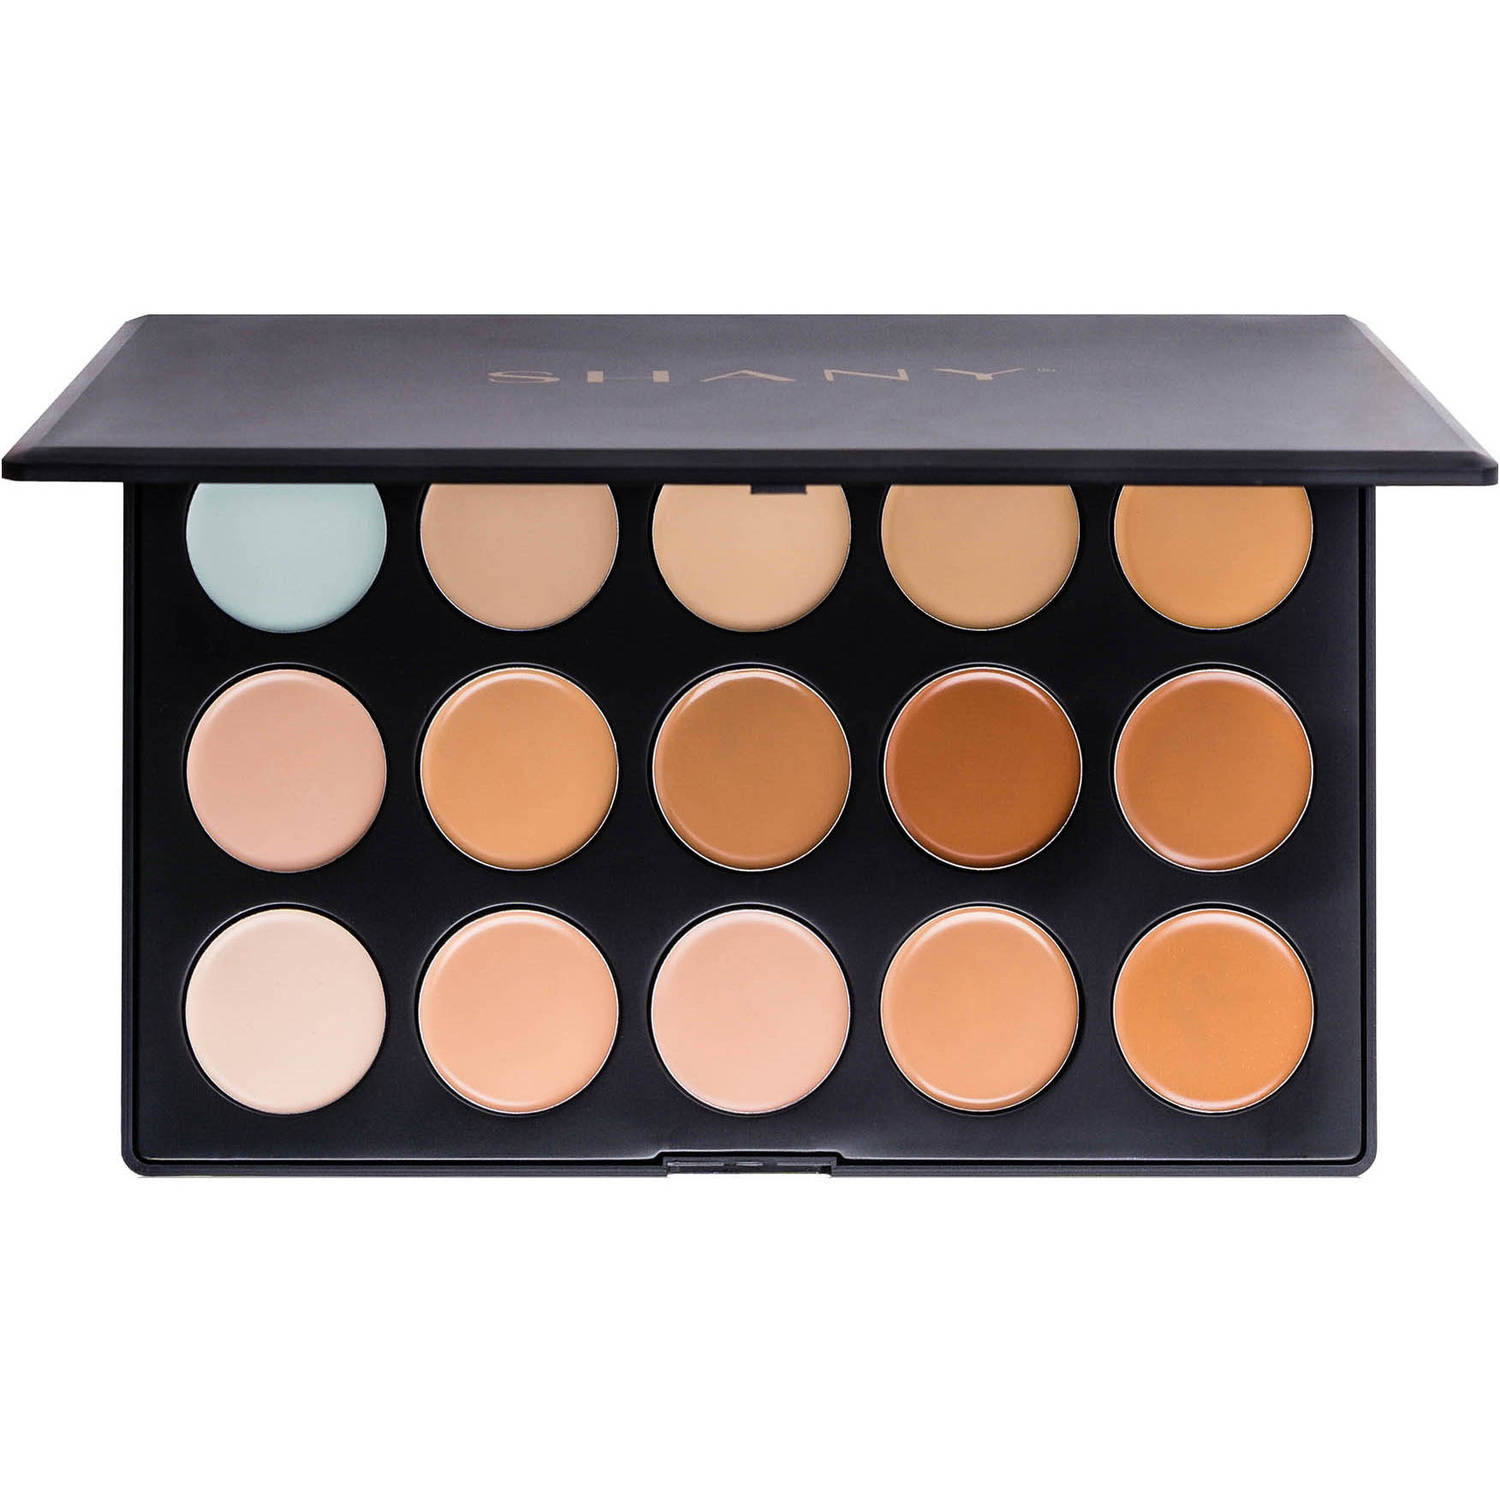 SHANY Professional Cream Foundation and Camouflage Concealer Palette